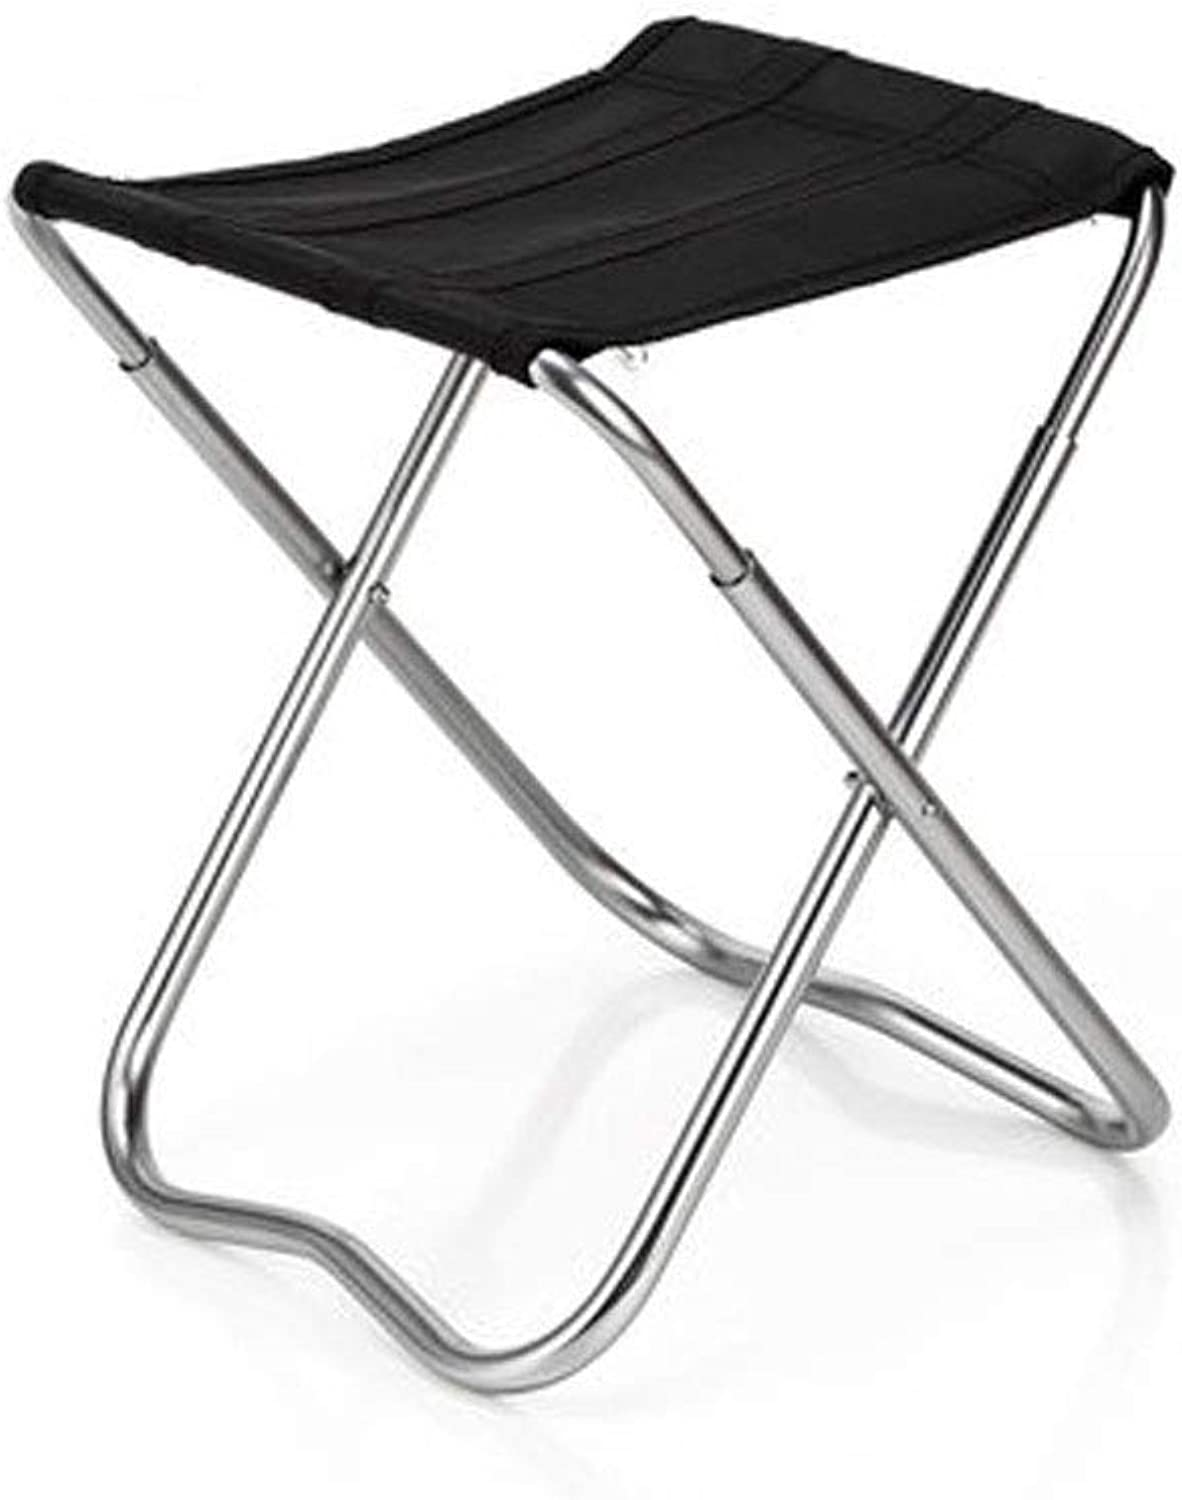 FH Outdoor Fishing Chair, Casual Portable Thick Folding Chair Camping Picnic Stool 23×19×29cm, Black